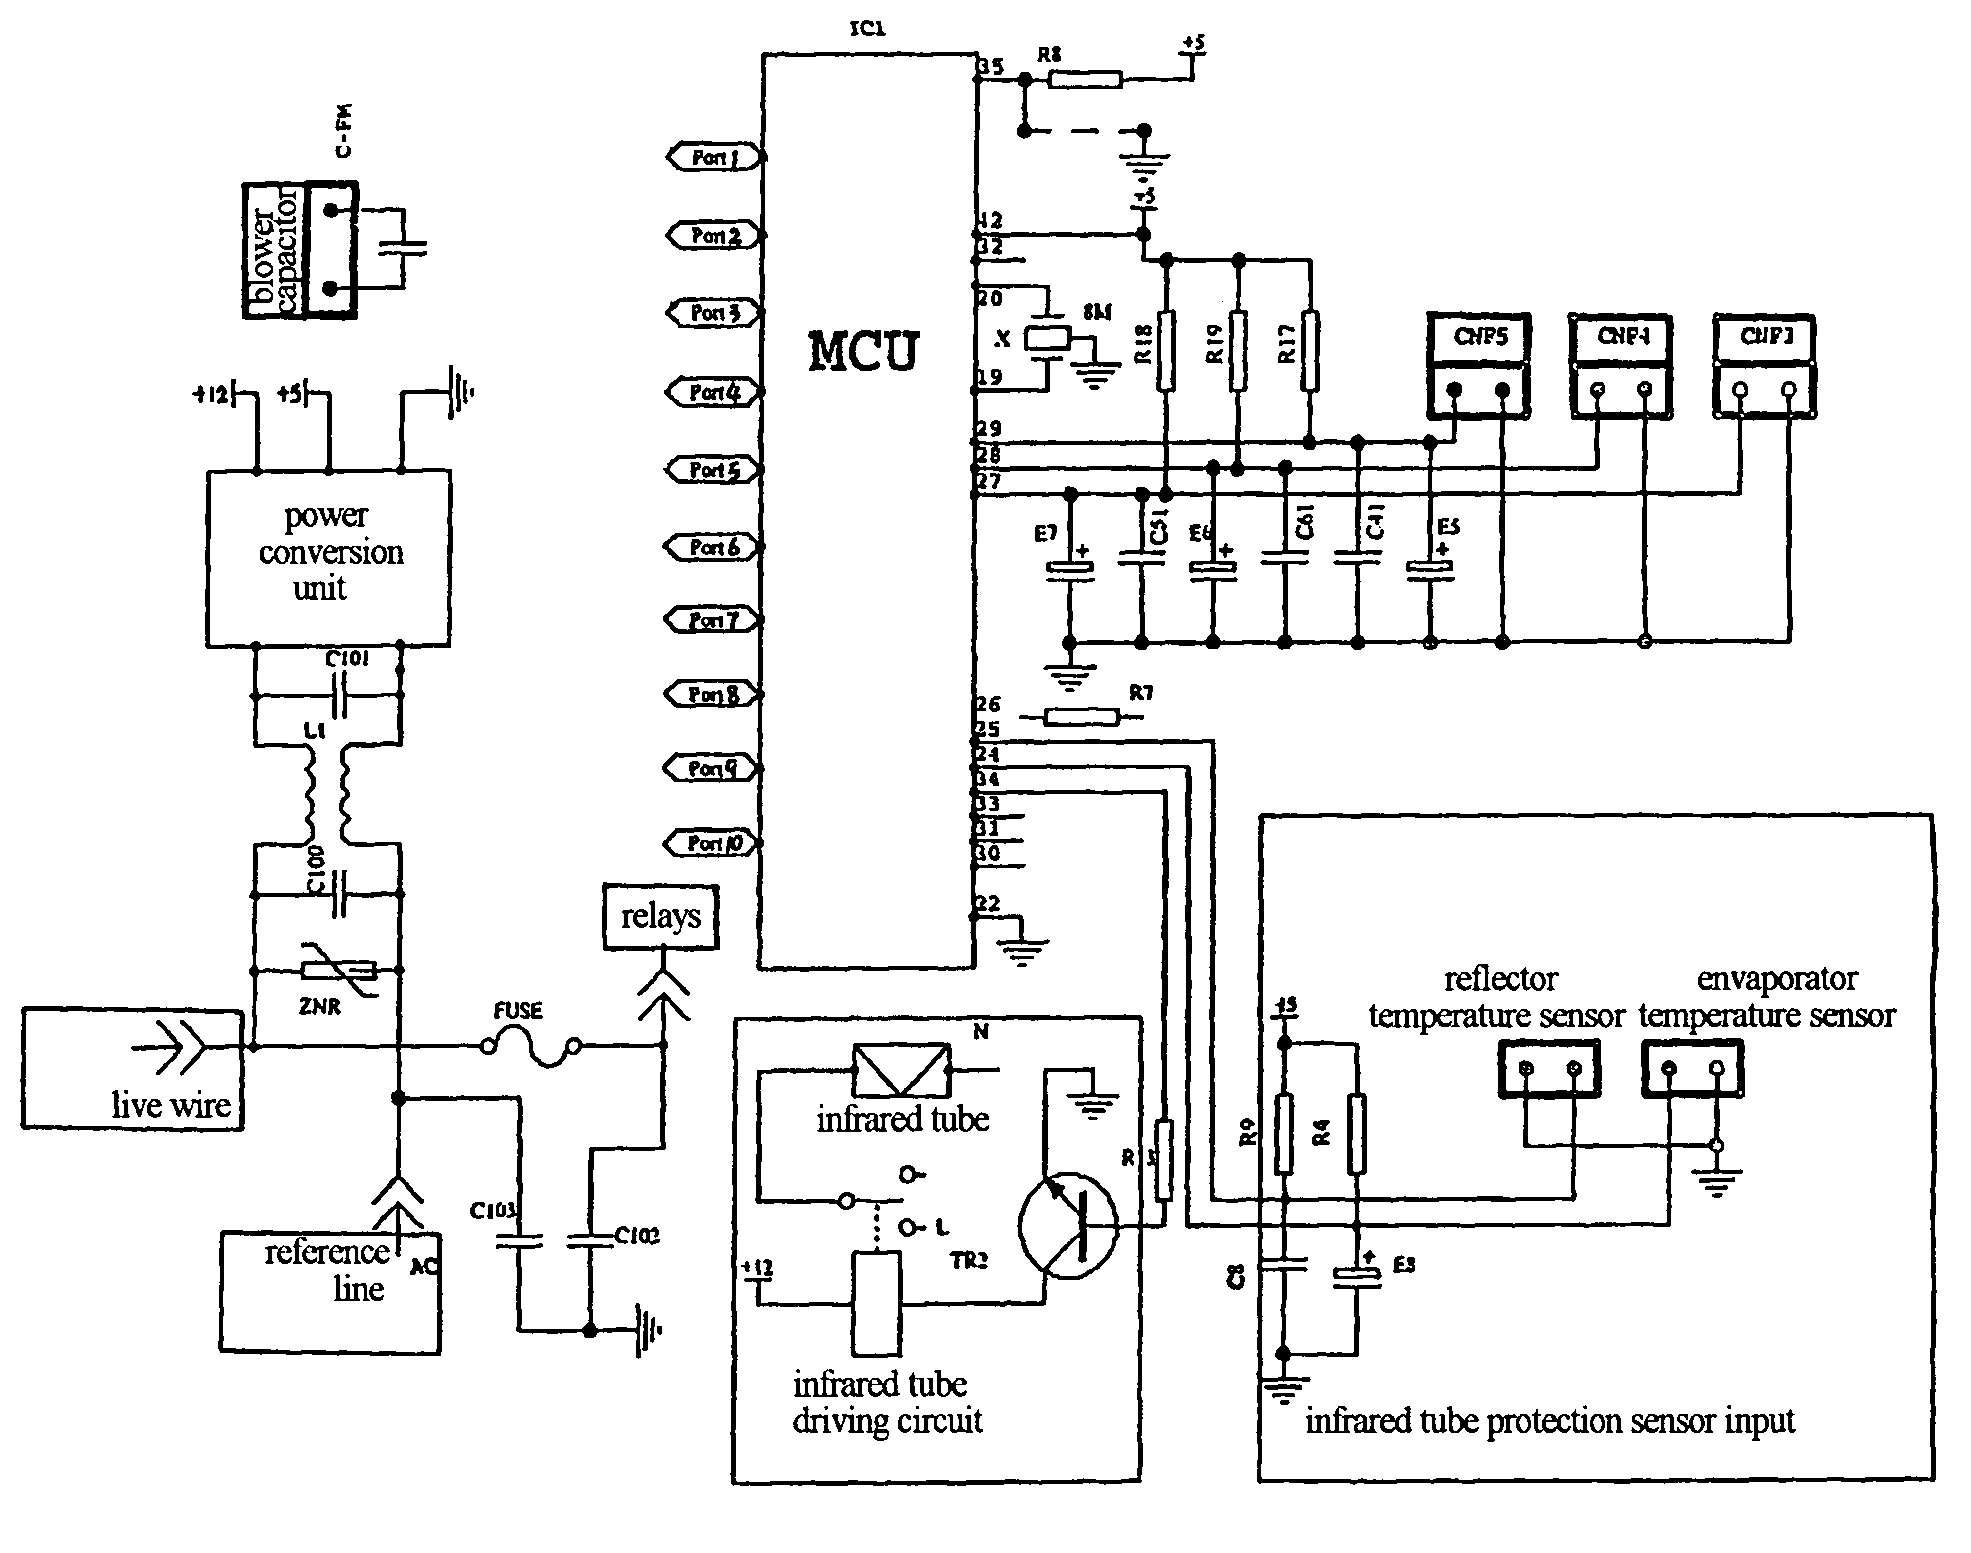 luxaire air conditioning wiring diagram rheem air